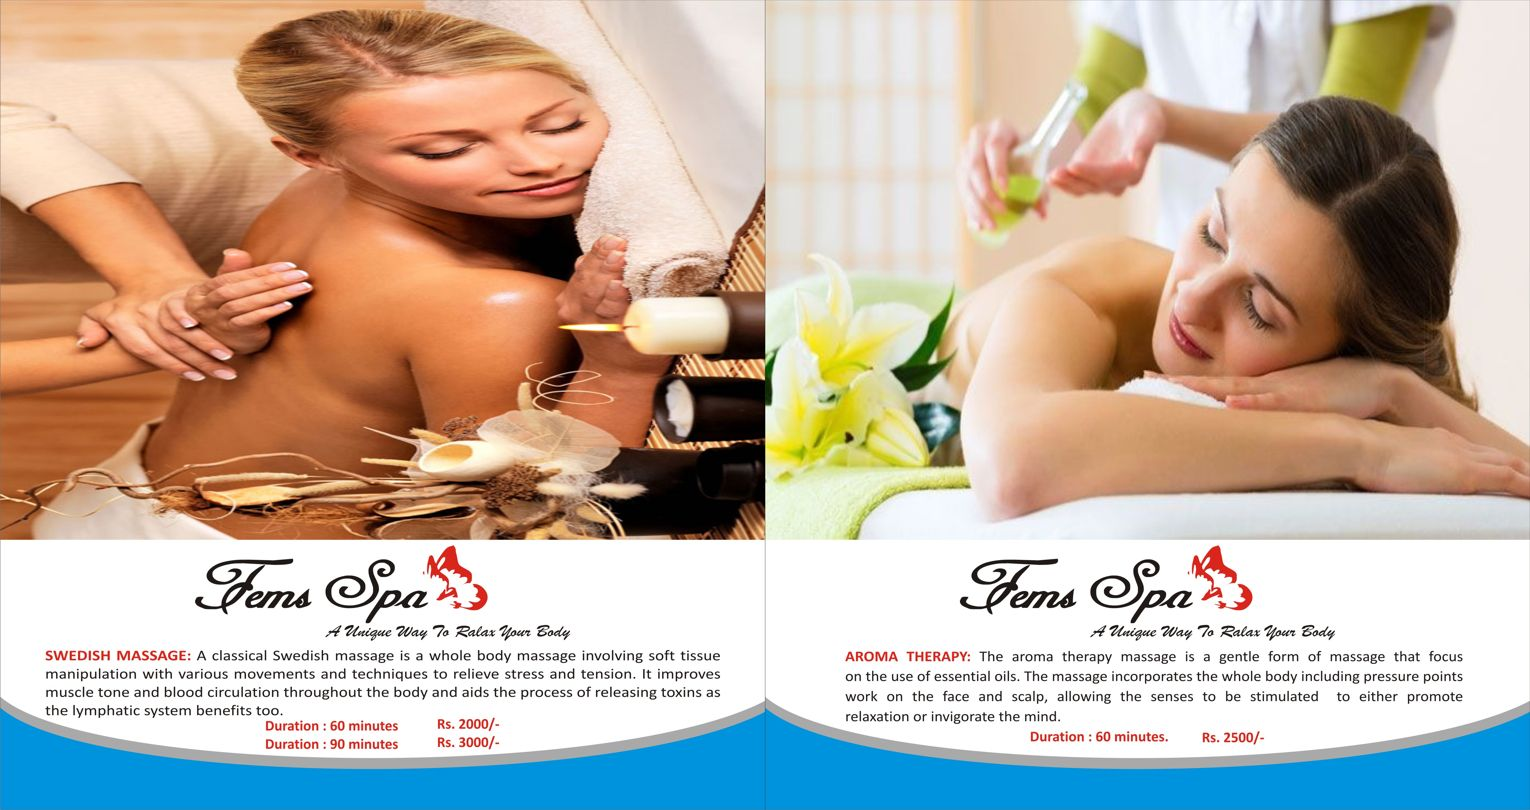 Swedish Massage and Aroma Therapy in Kotla Defence Colony South Extension Delhi NCR - Fems Spa - Spas and Salons India